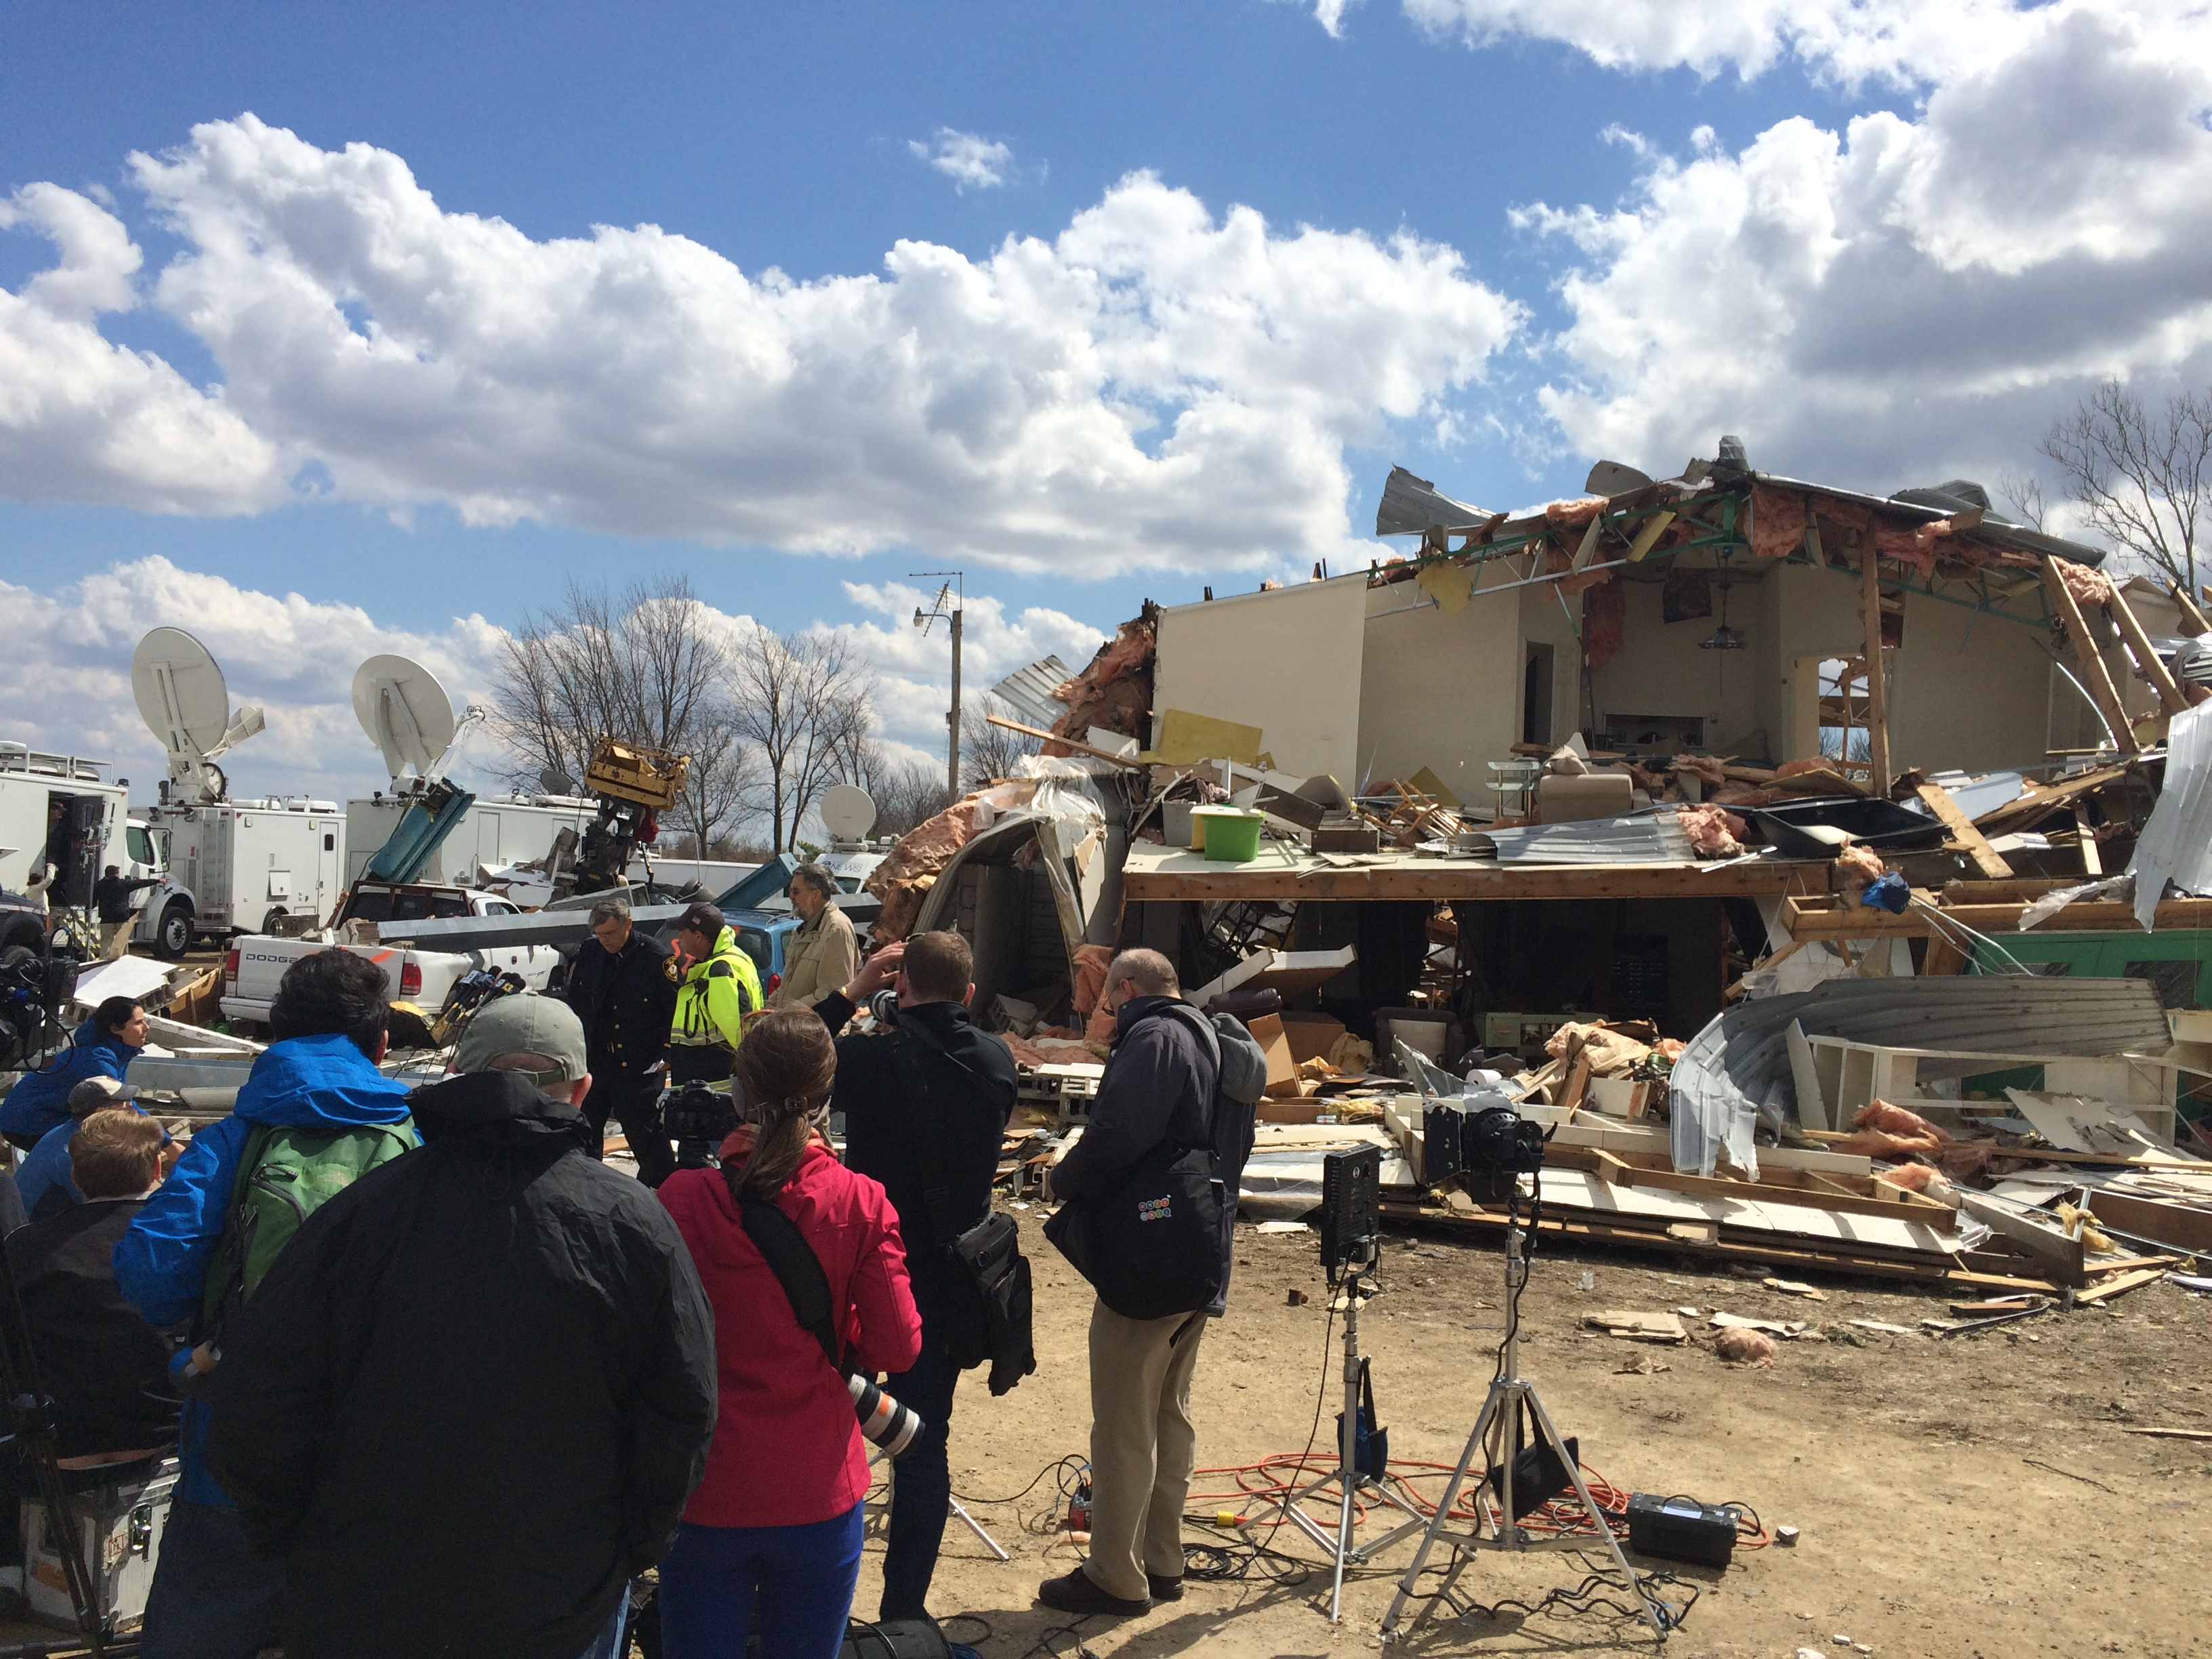 2015 04 10 14.27.47 Chicago Crew Covers Tornado Aftermath for The Weather Channel